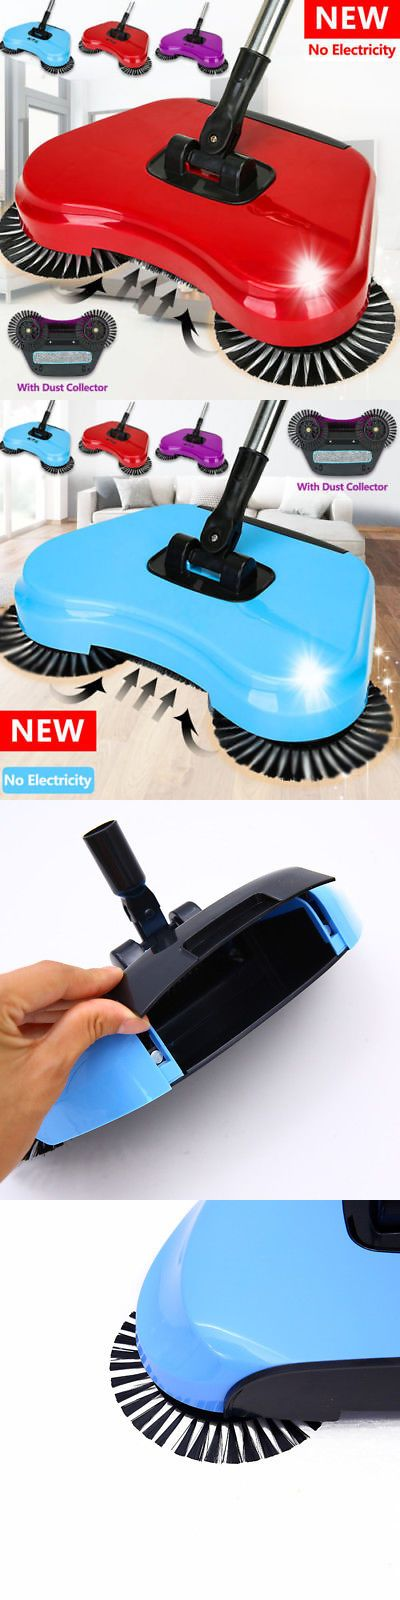 Carpet And Floor Sweepers 79657 No Electricity Spin Hand Push Sweeper Broom Household Floor Dust Cleaning Mop Buy It Now Cleaning Mops Sweeper Broom Broom